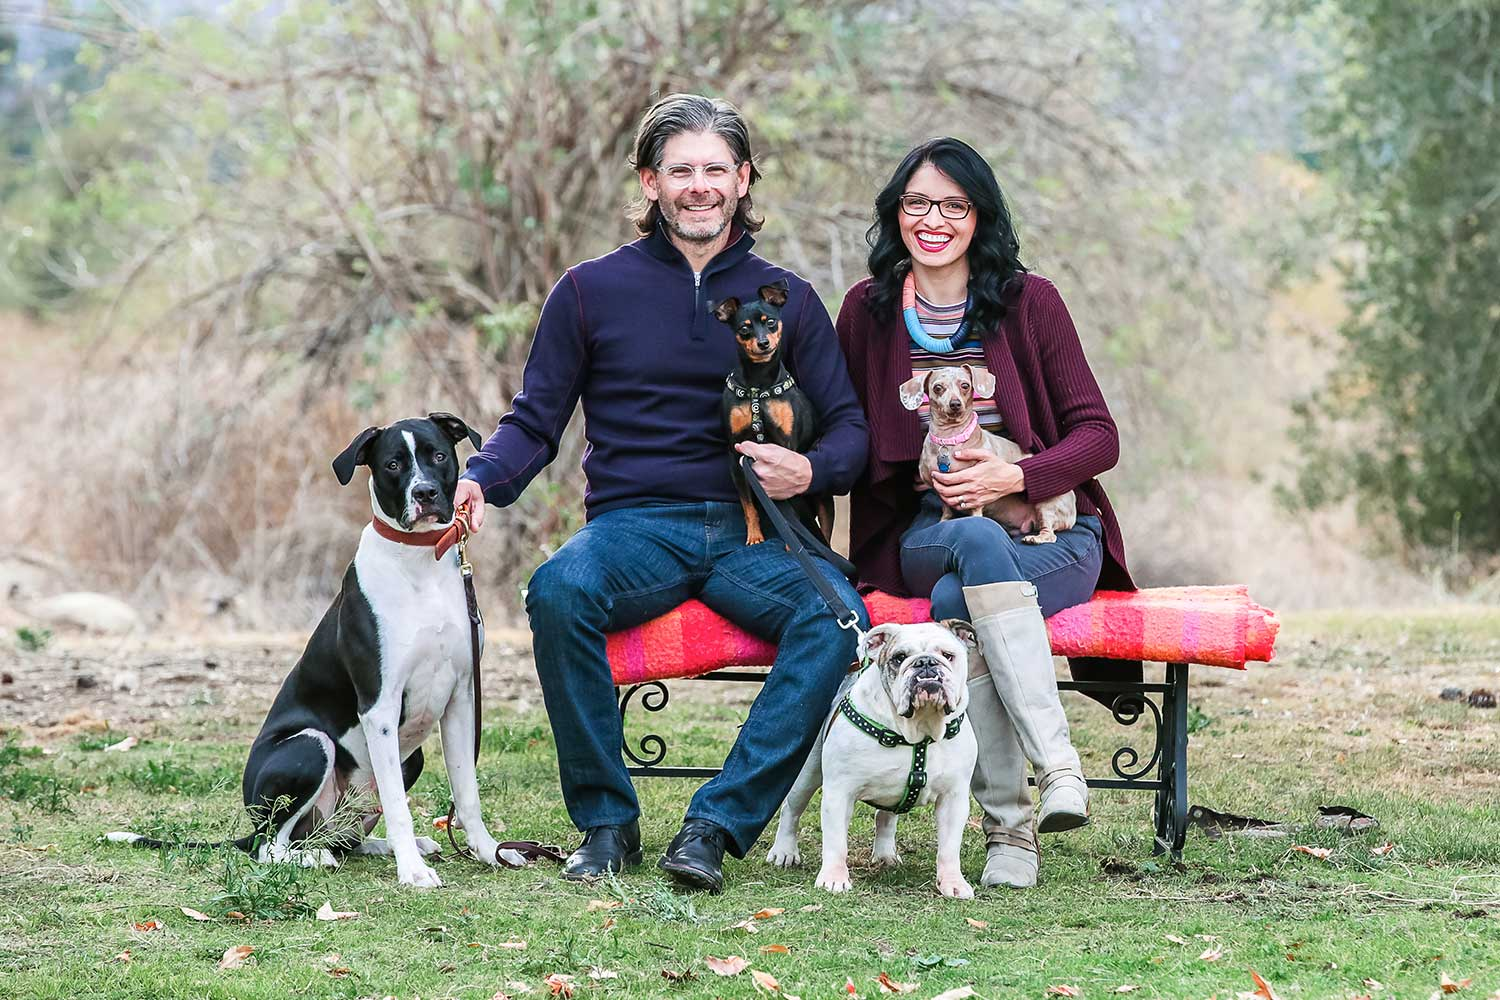 Jenna-Pilant-Design+Style-Blogger-How-To-Style-A-Family-Photoshoot-With-Dogs-1